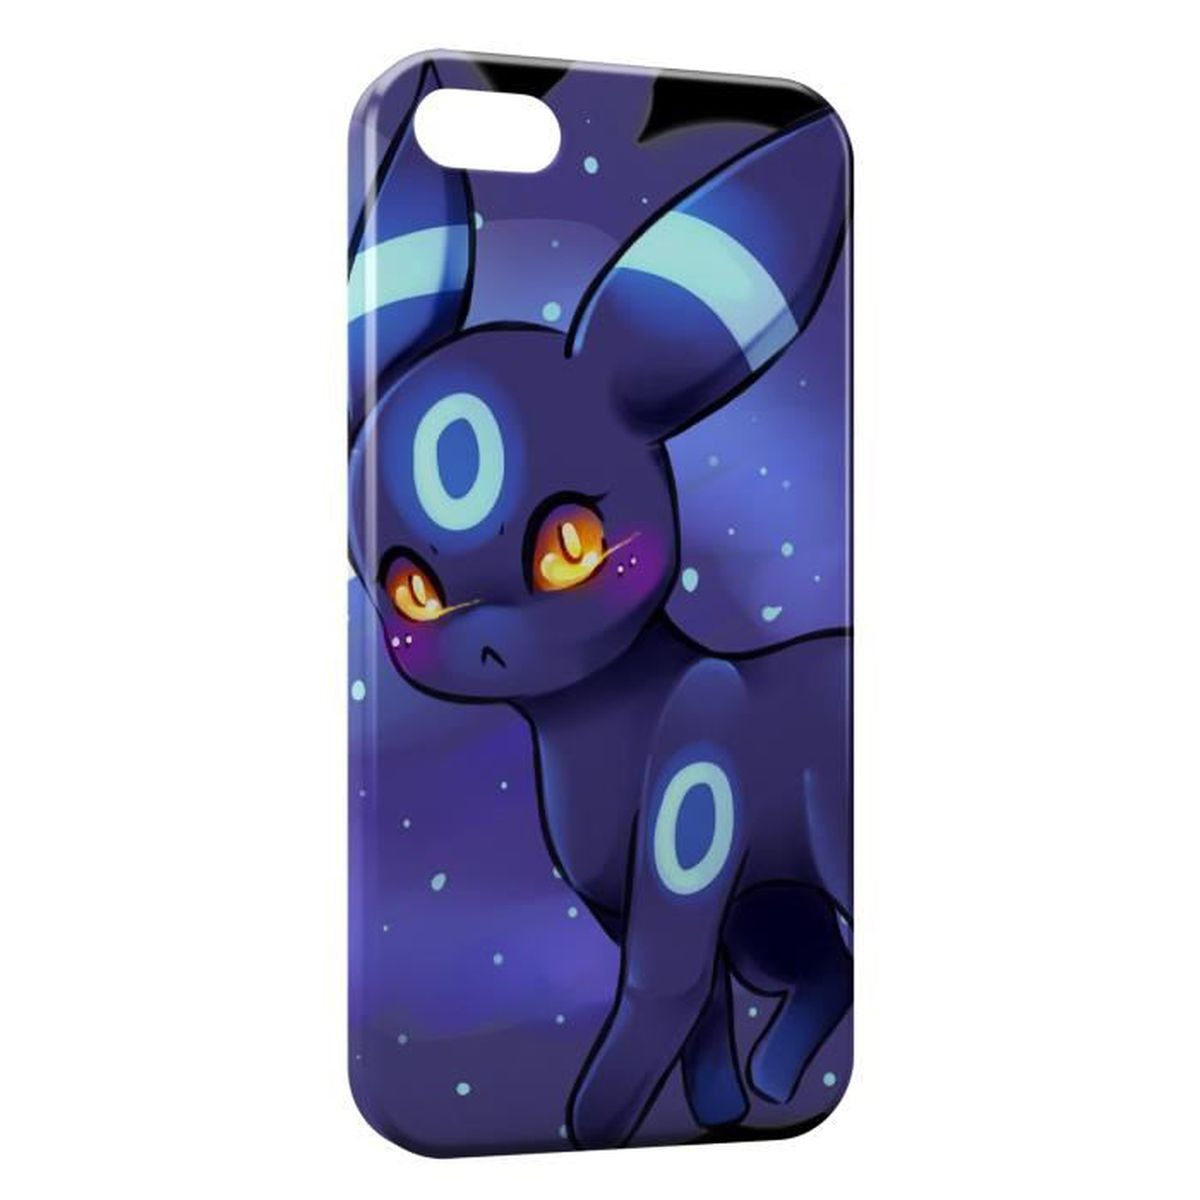 coque iphone 6 plus pokemon